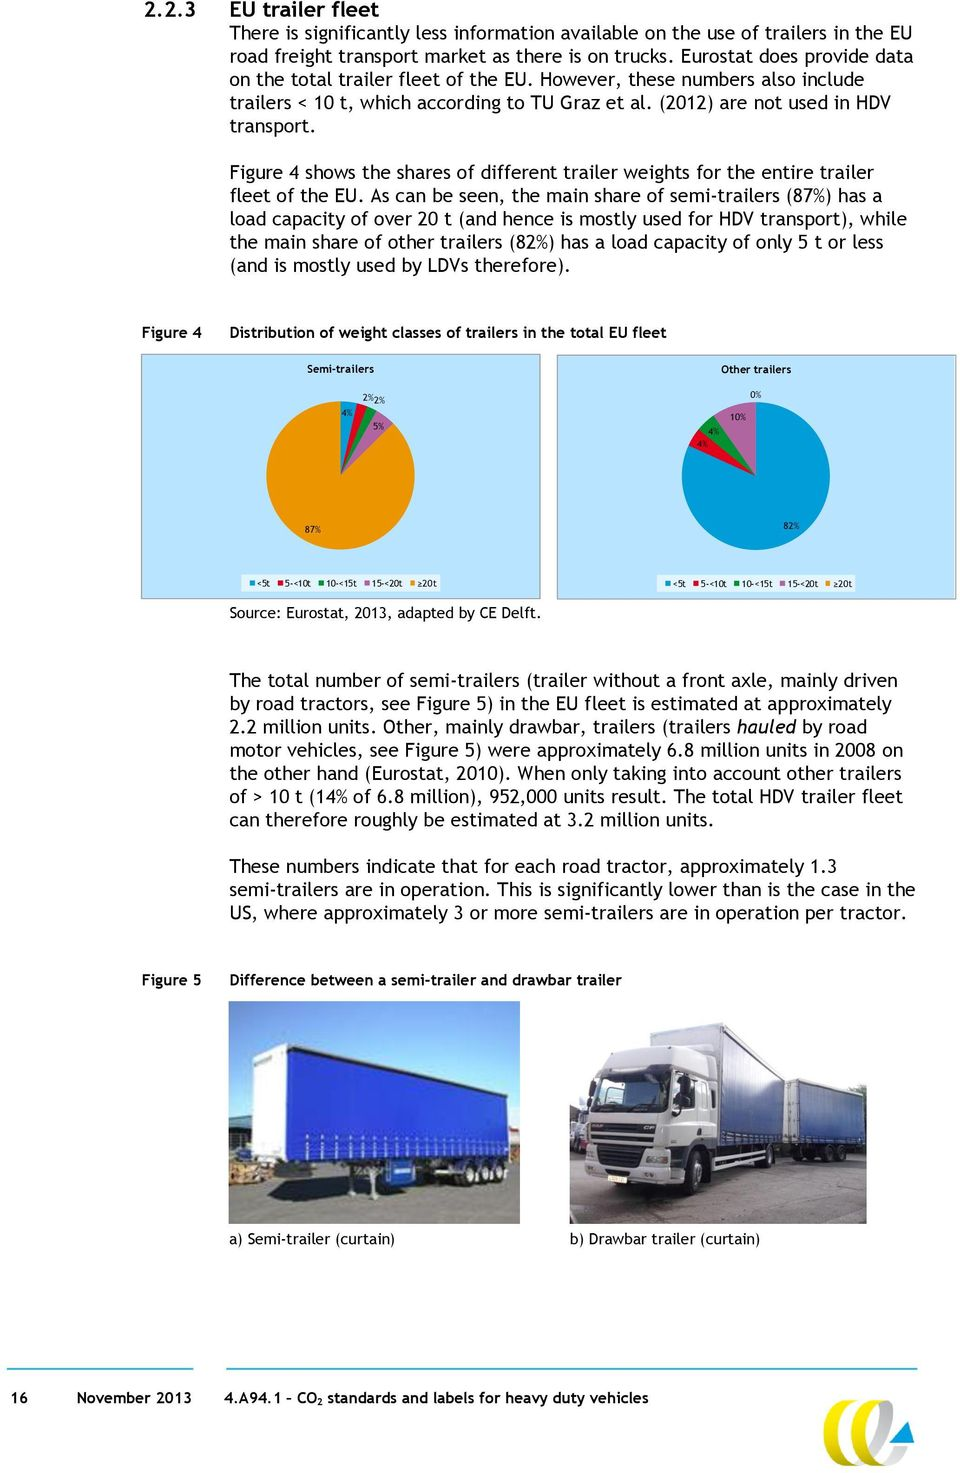 Figure 4 shows the shares of different trailer weights for the entire trailer fleet of the EU.